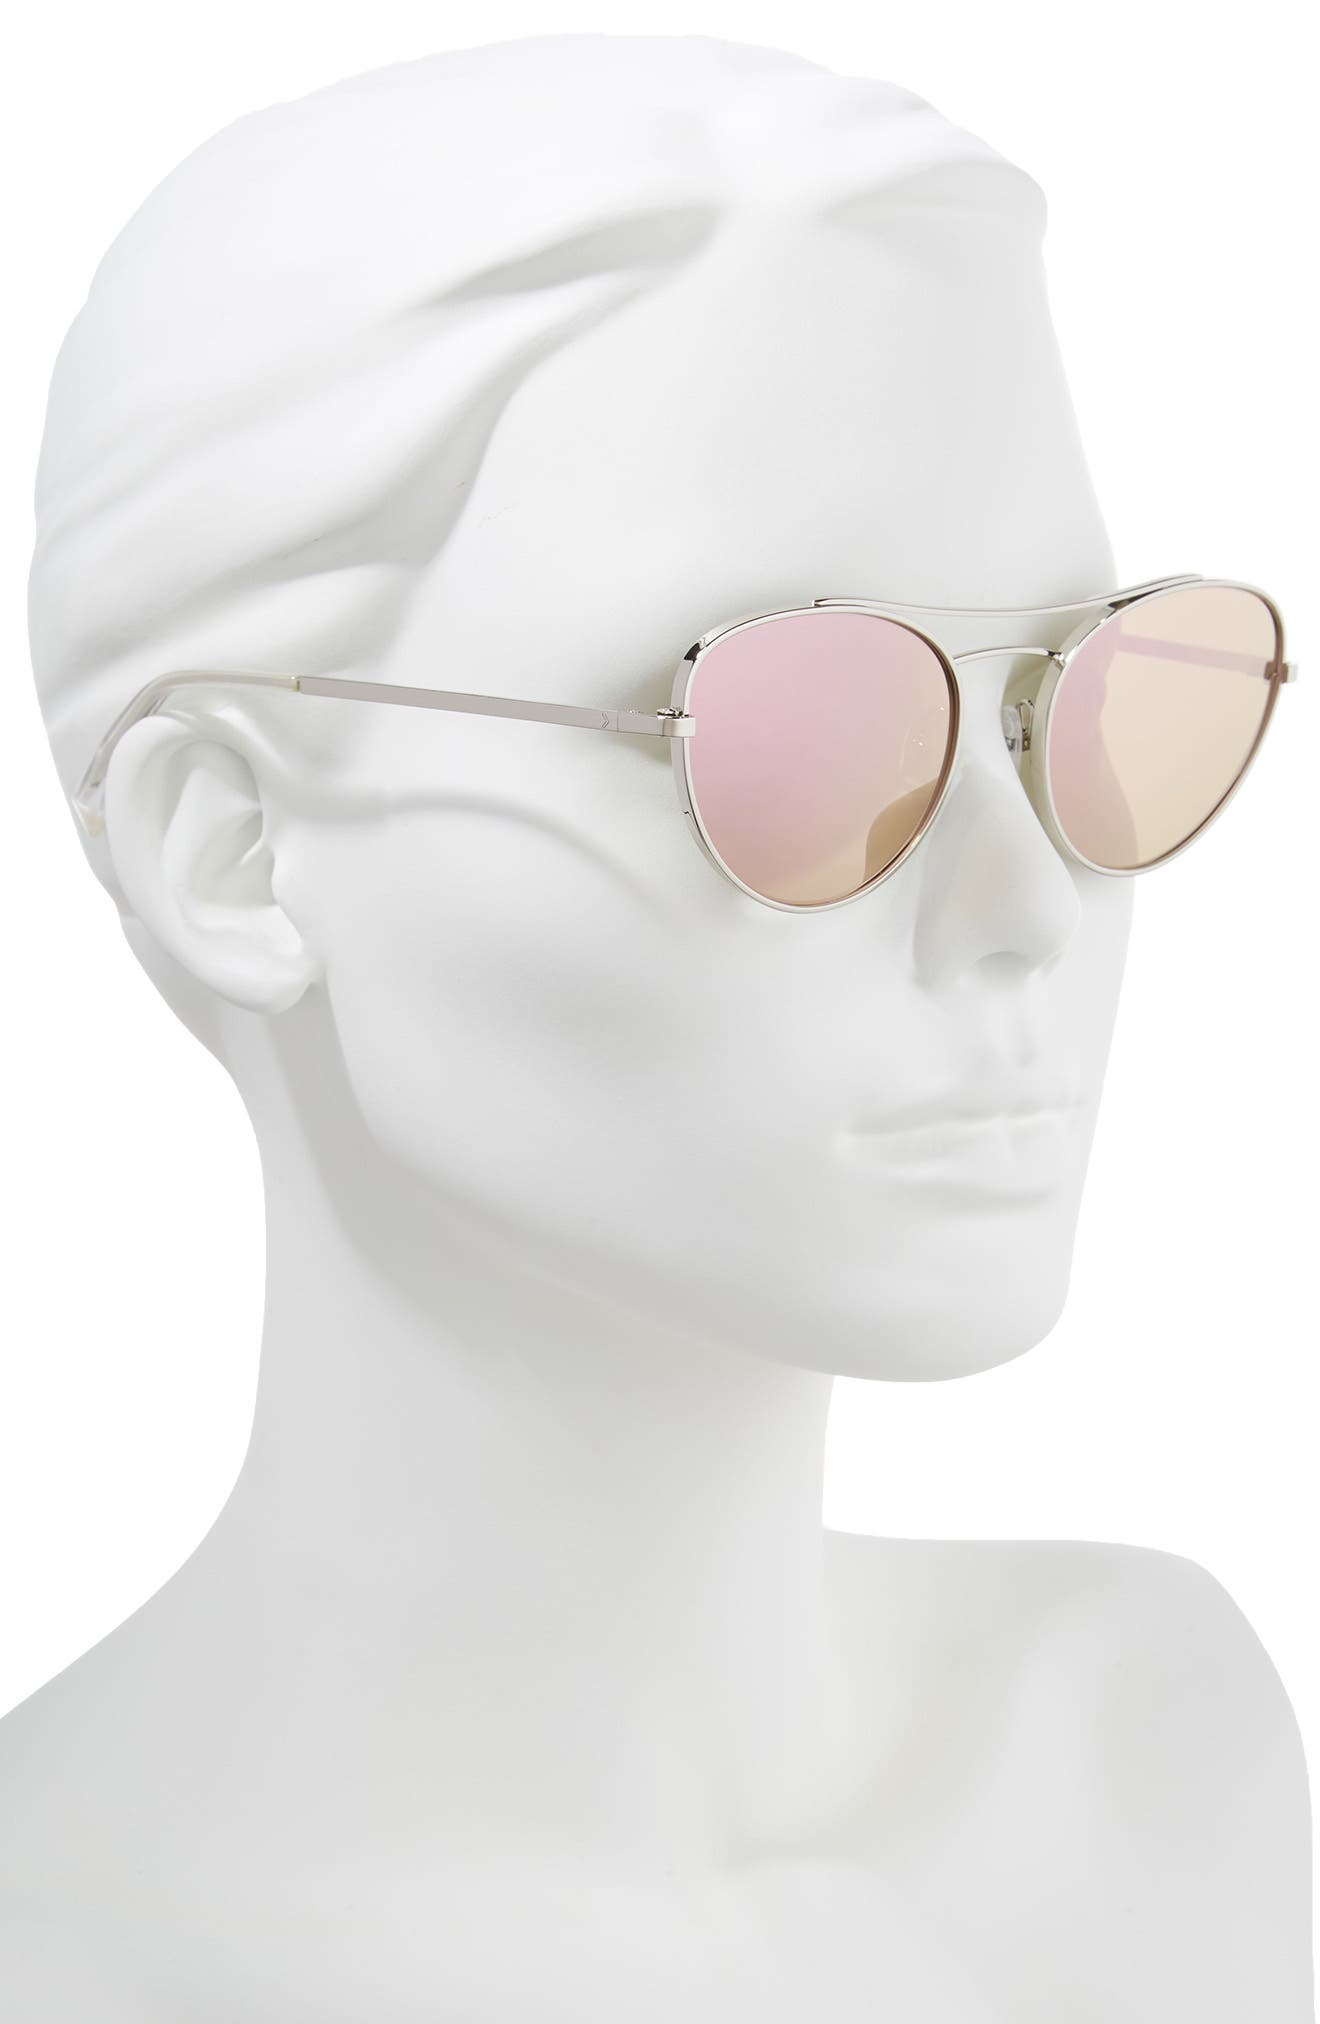 Yasmin 55mm Aviator Sunglasses,                             Alternate thumbnail 2, color,                             Silver/ Rose Gold Mirror